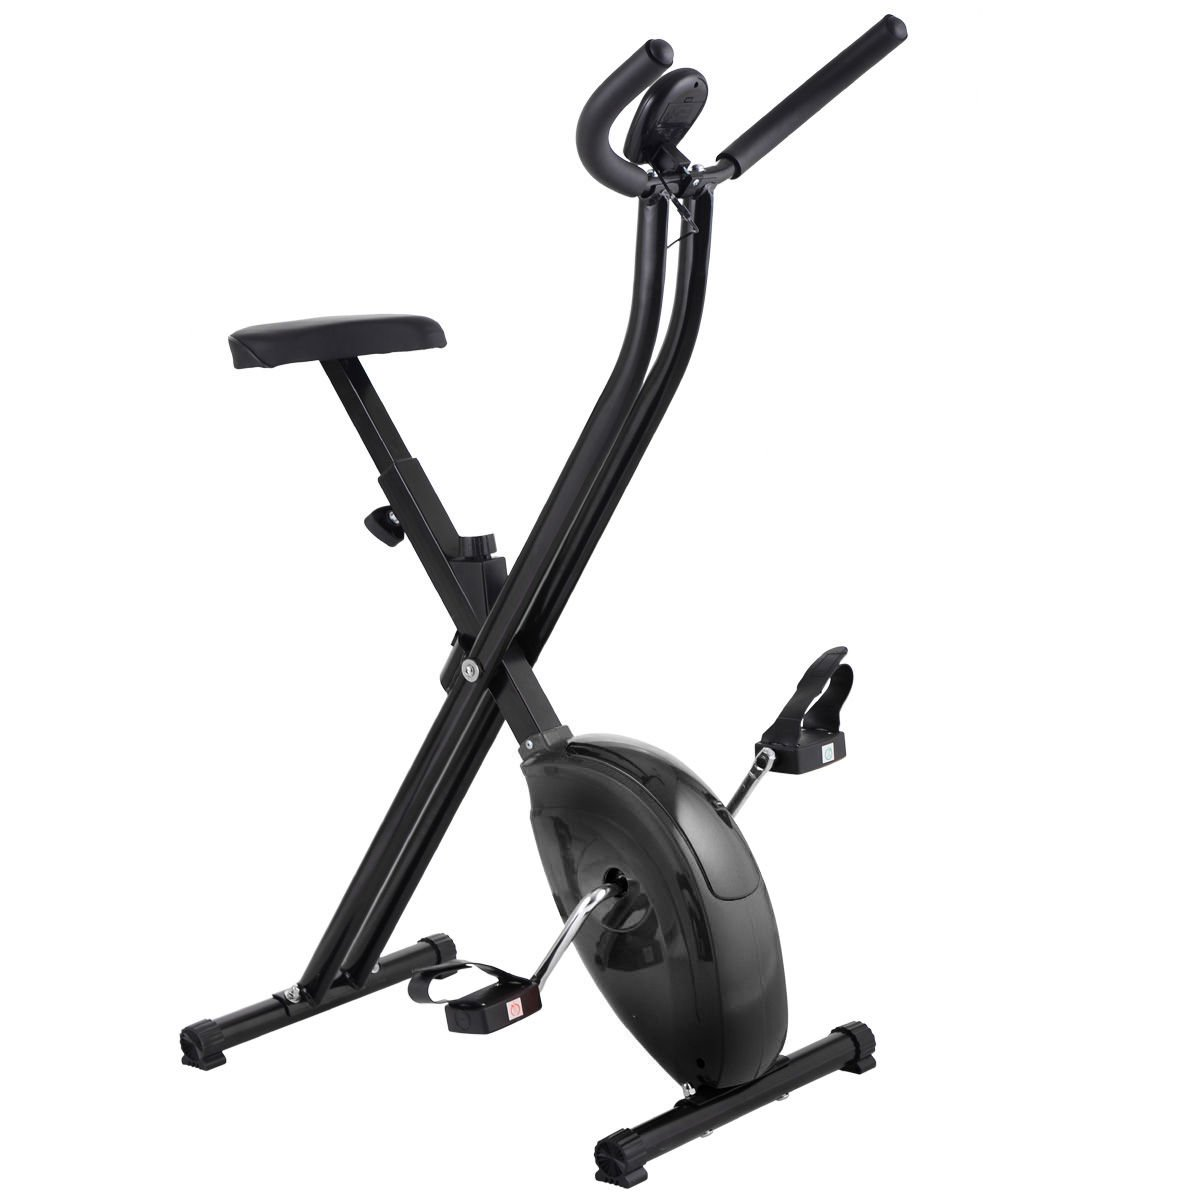 Folding Exercise Bike Home Magnetic Trainer Fitness Stationary Machine New - Black by Eight24hours (Image #8)